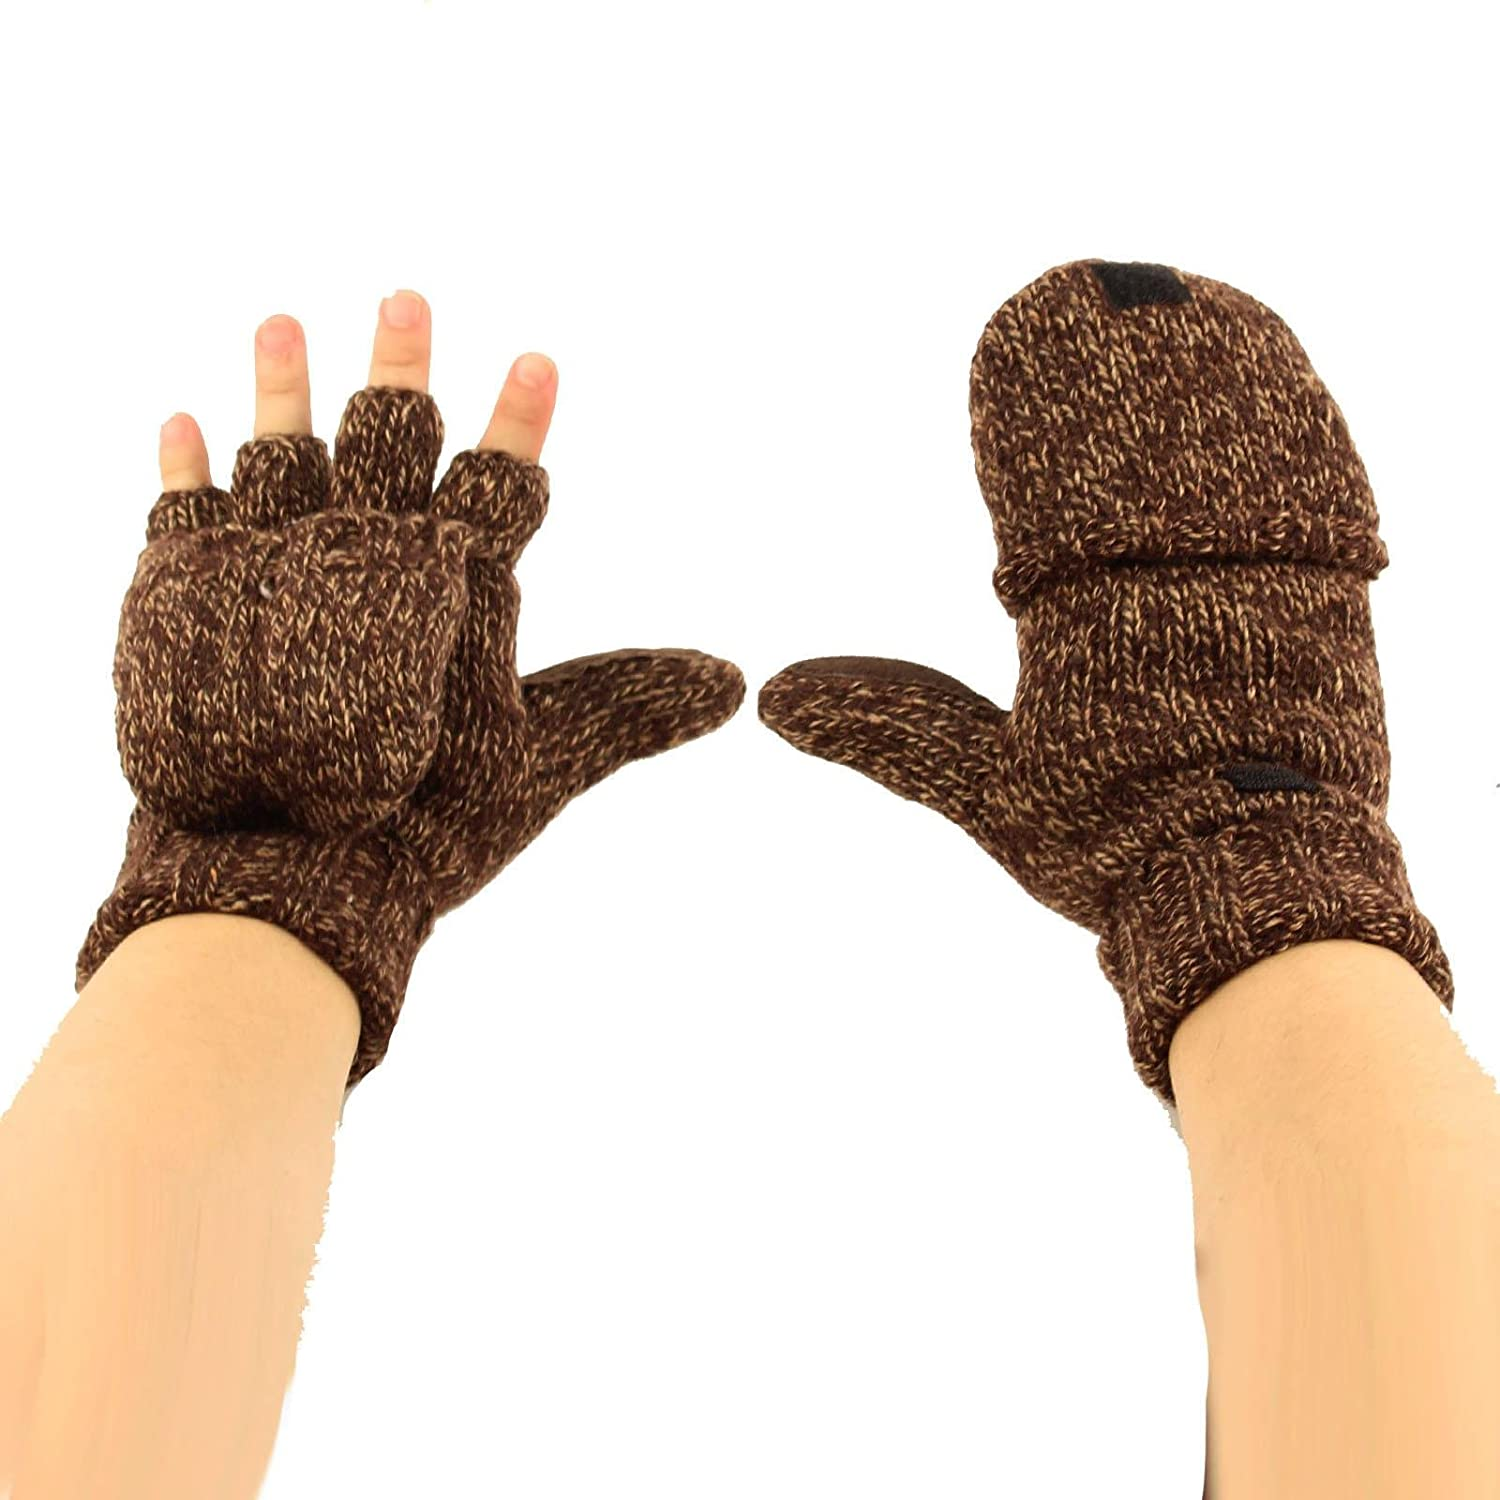 Men's Thinsulate 3M Thick Wool Knitted Half Mitten Suede Palm Gloves SK-Hat-Shop